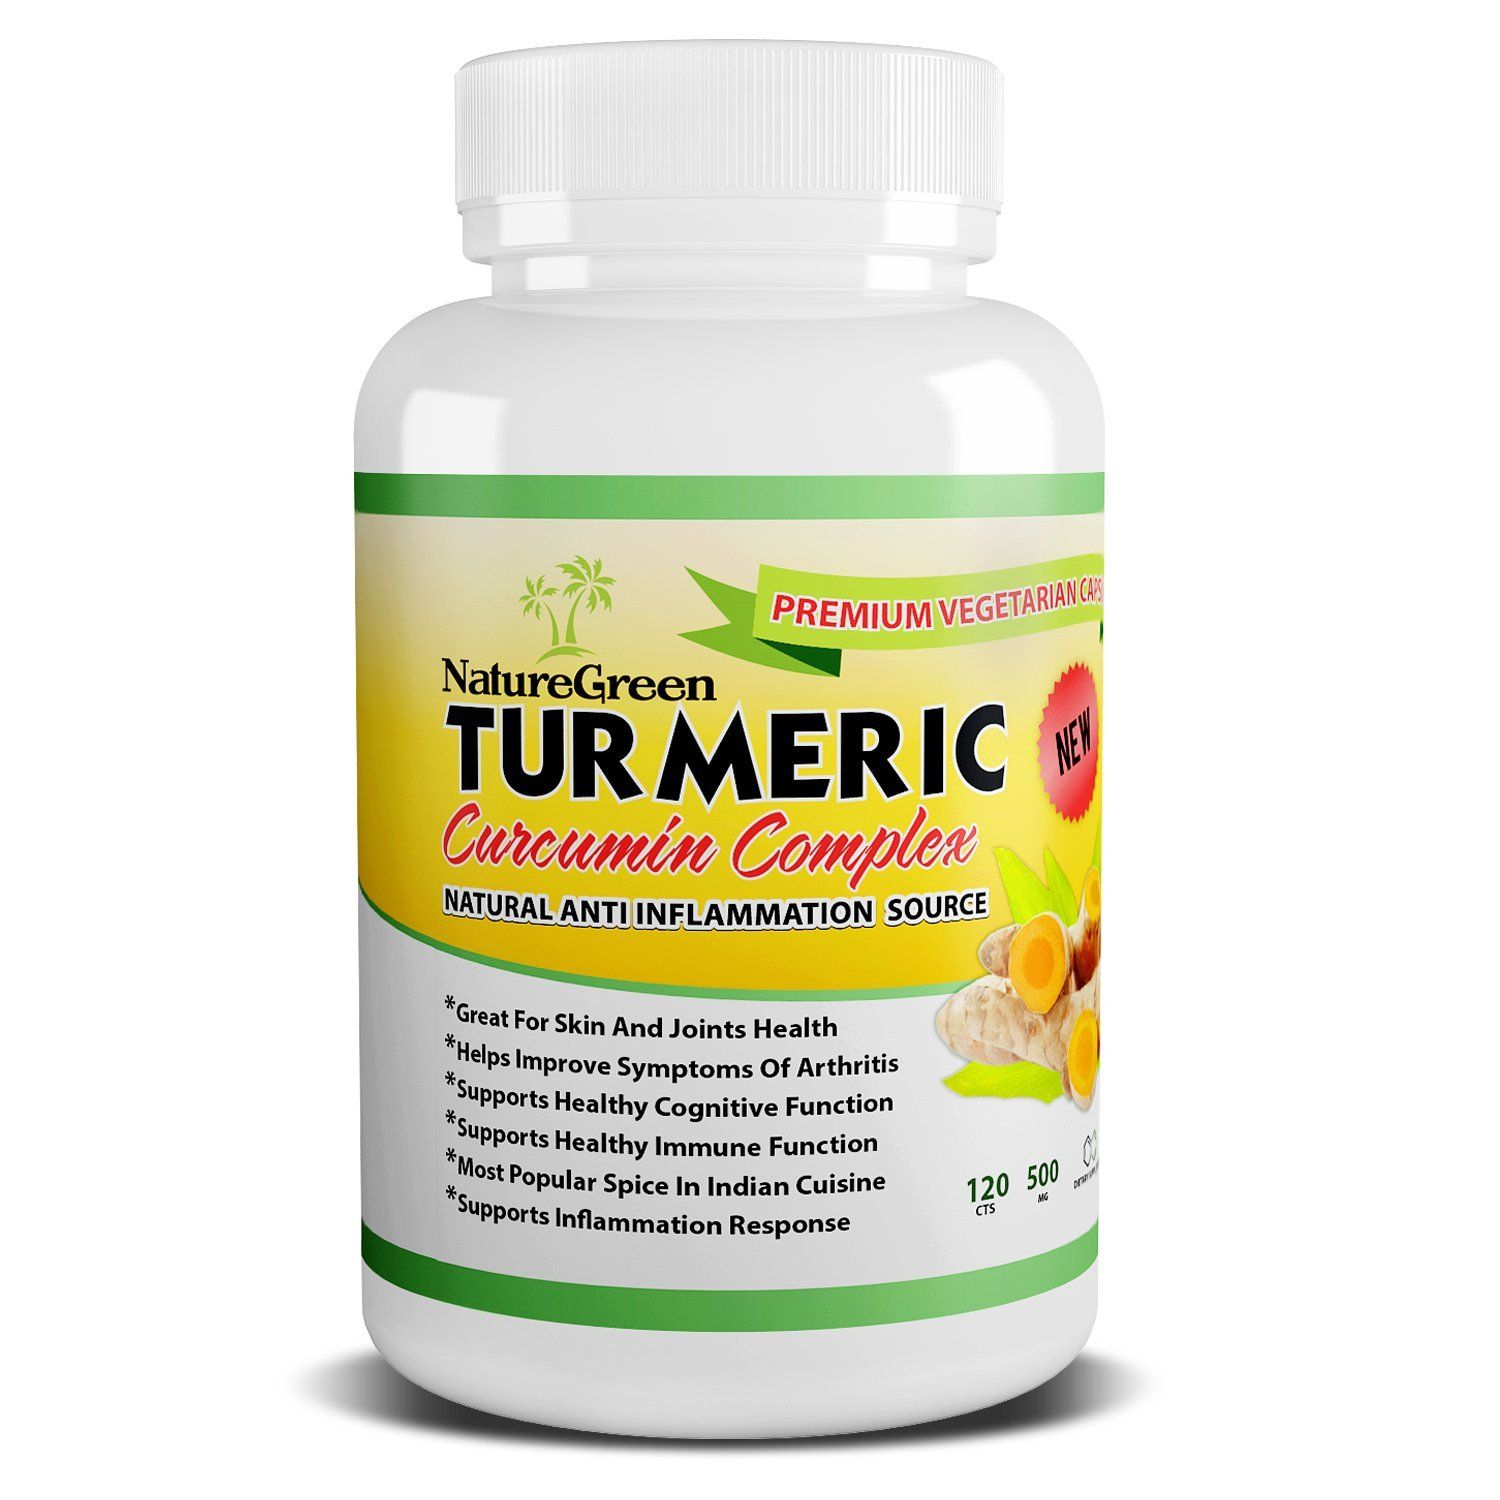 curcumin and turmeric benefits of turmeric curcumin